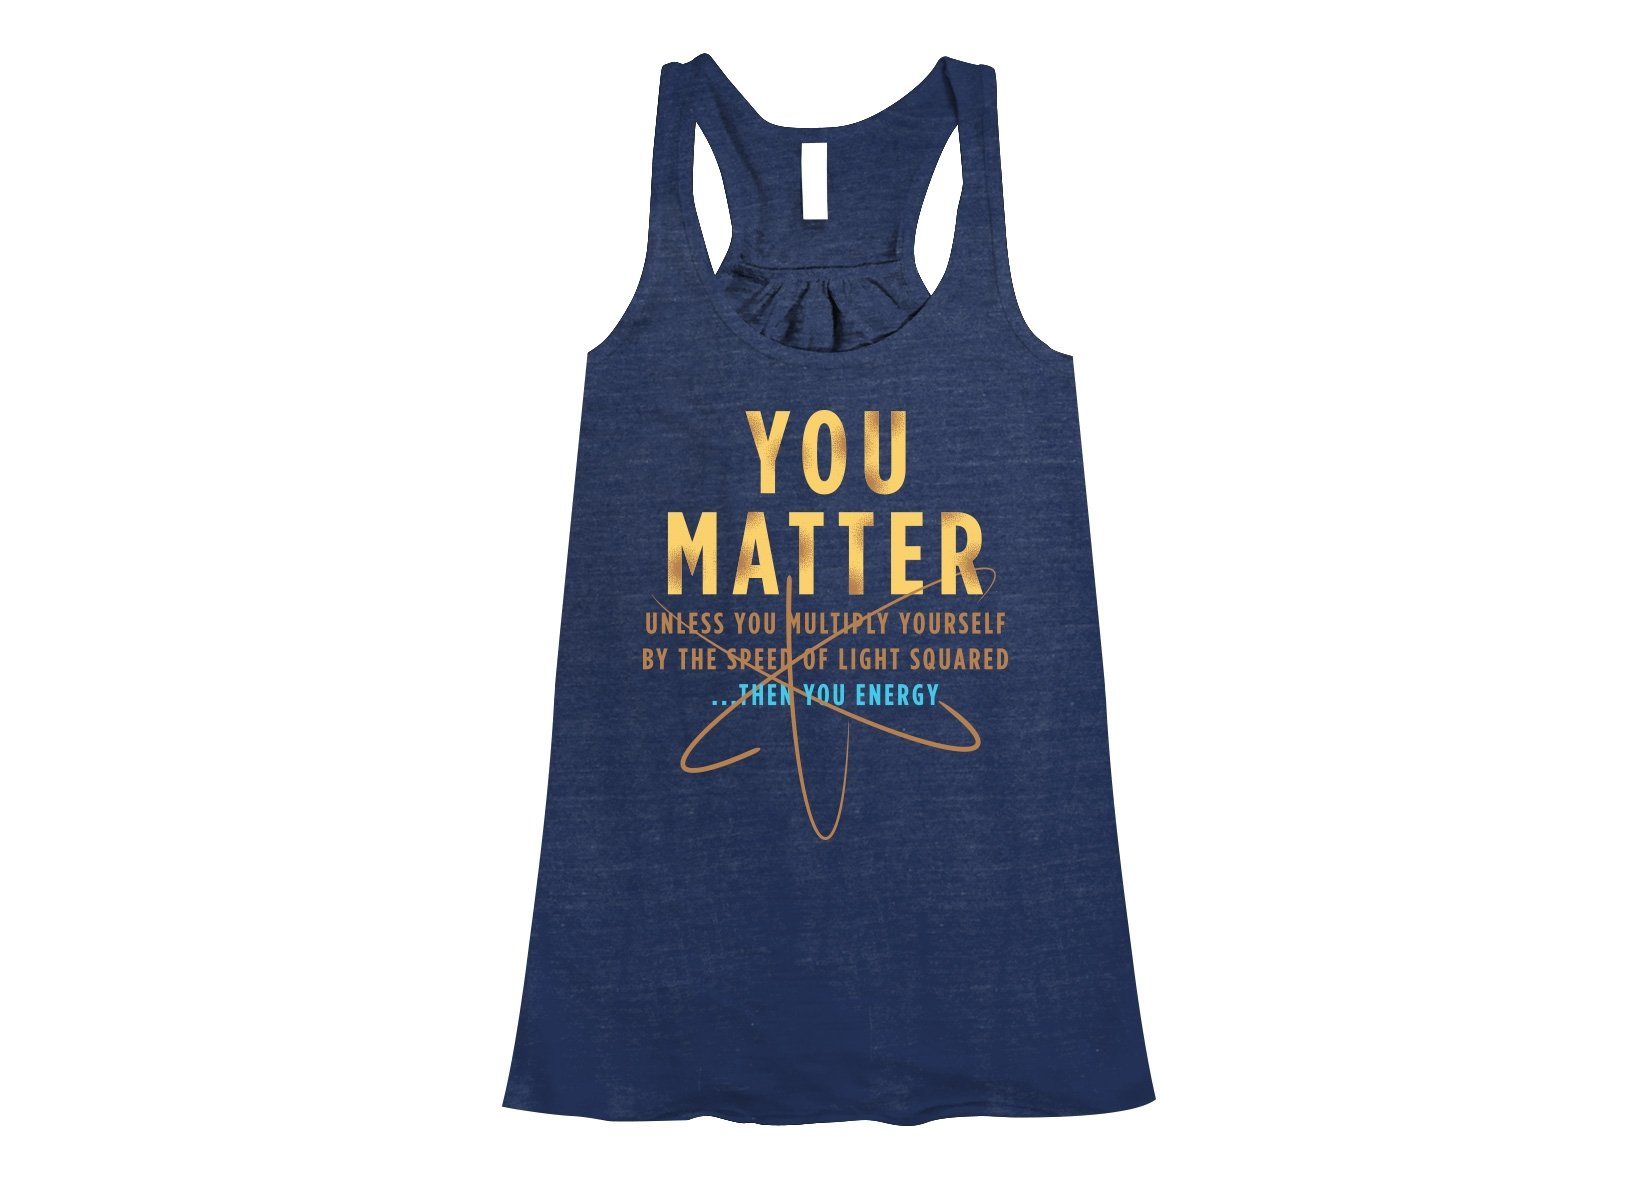 You Matter on Womens Tanks T-Shirt